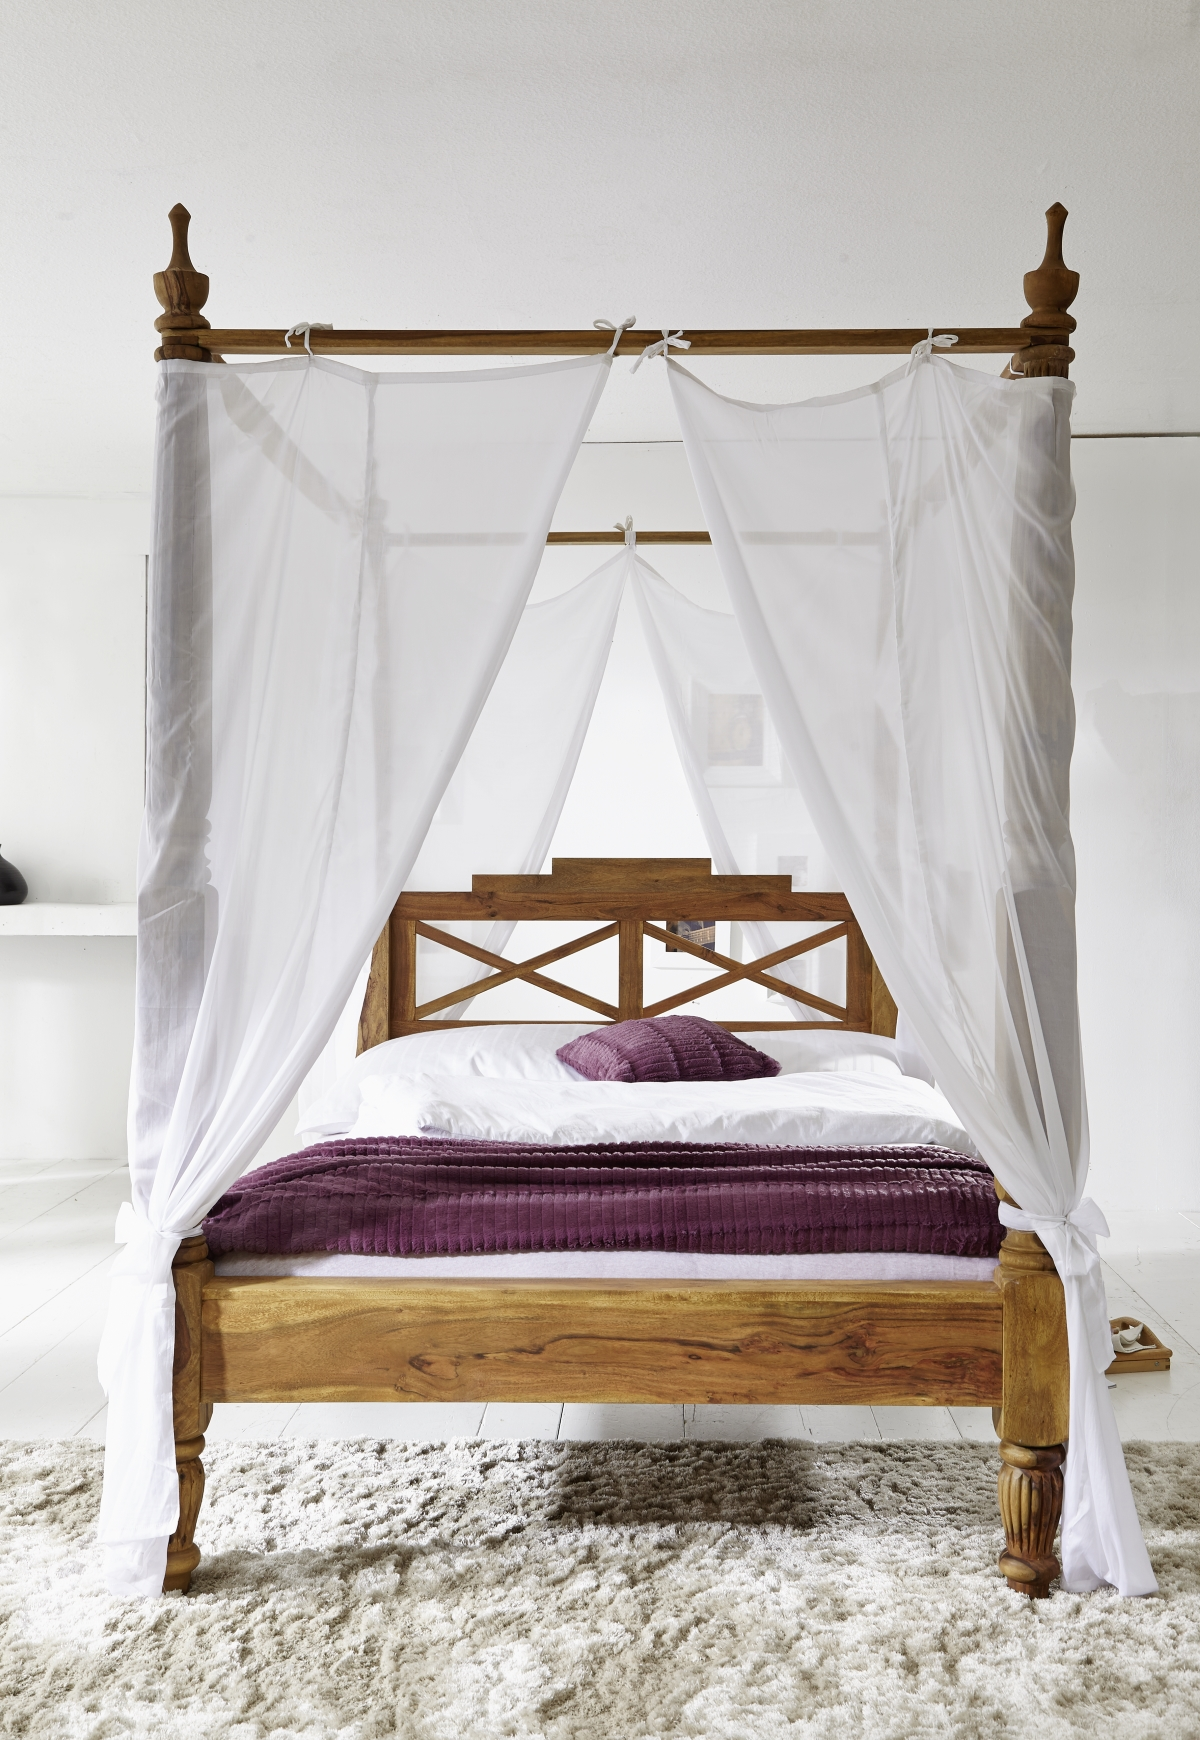 - Wooden Four-poster Bed 180x200 Cm Made Of Sheesham Palisander Wood